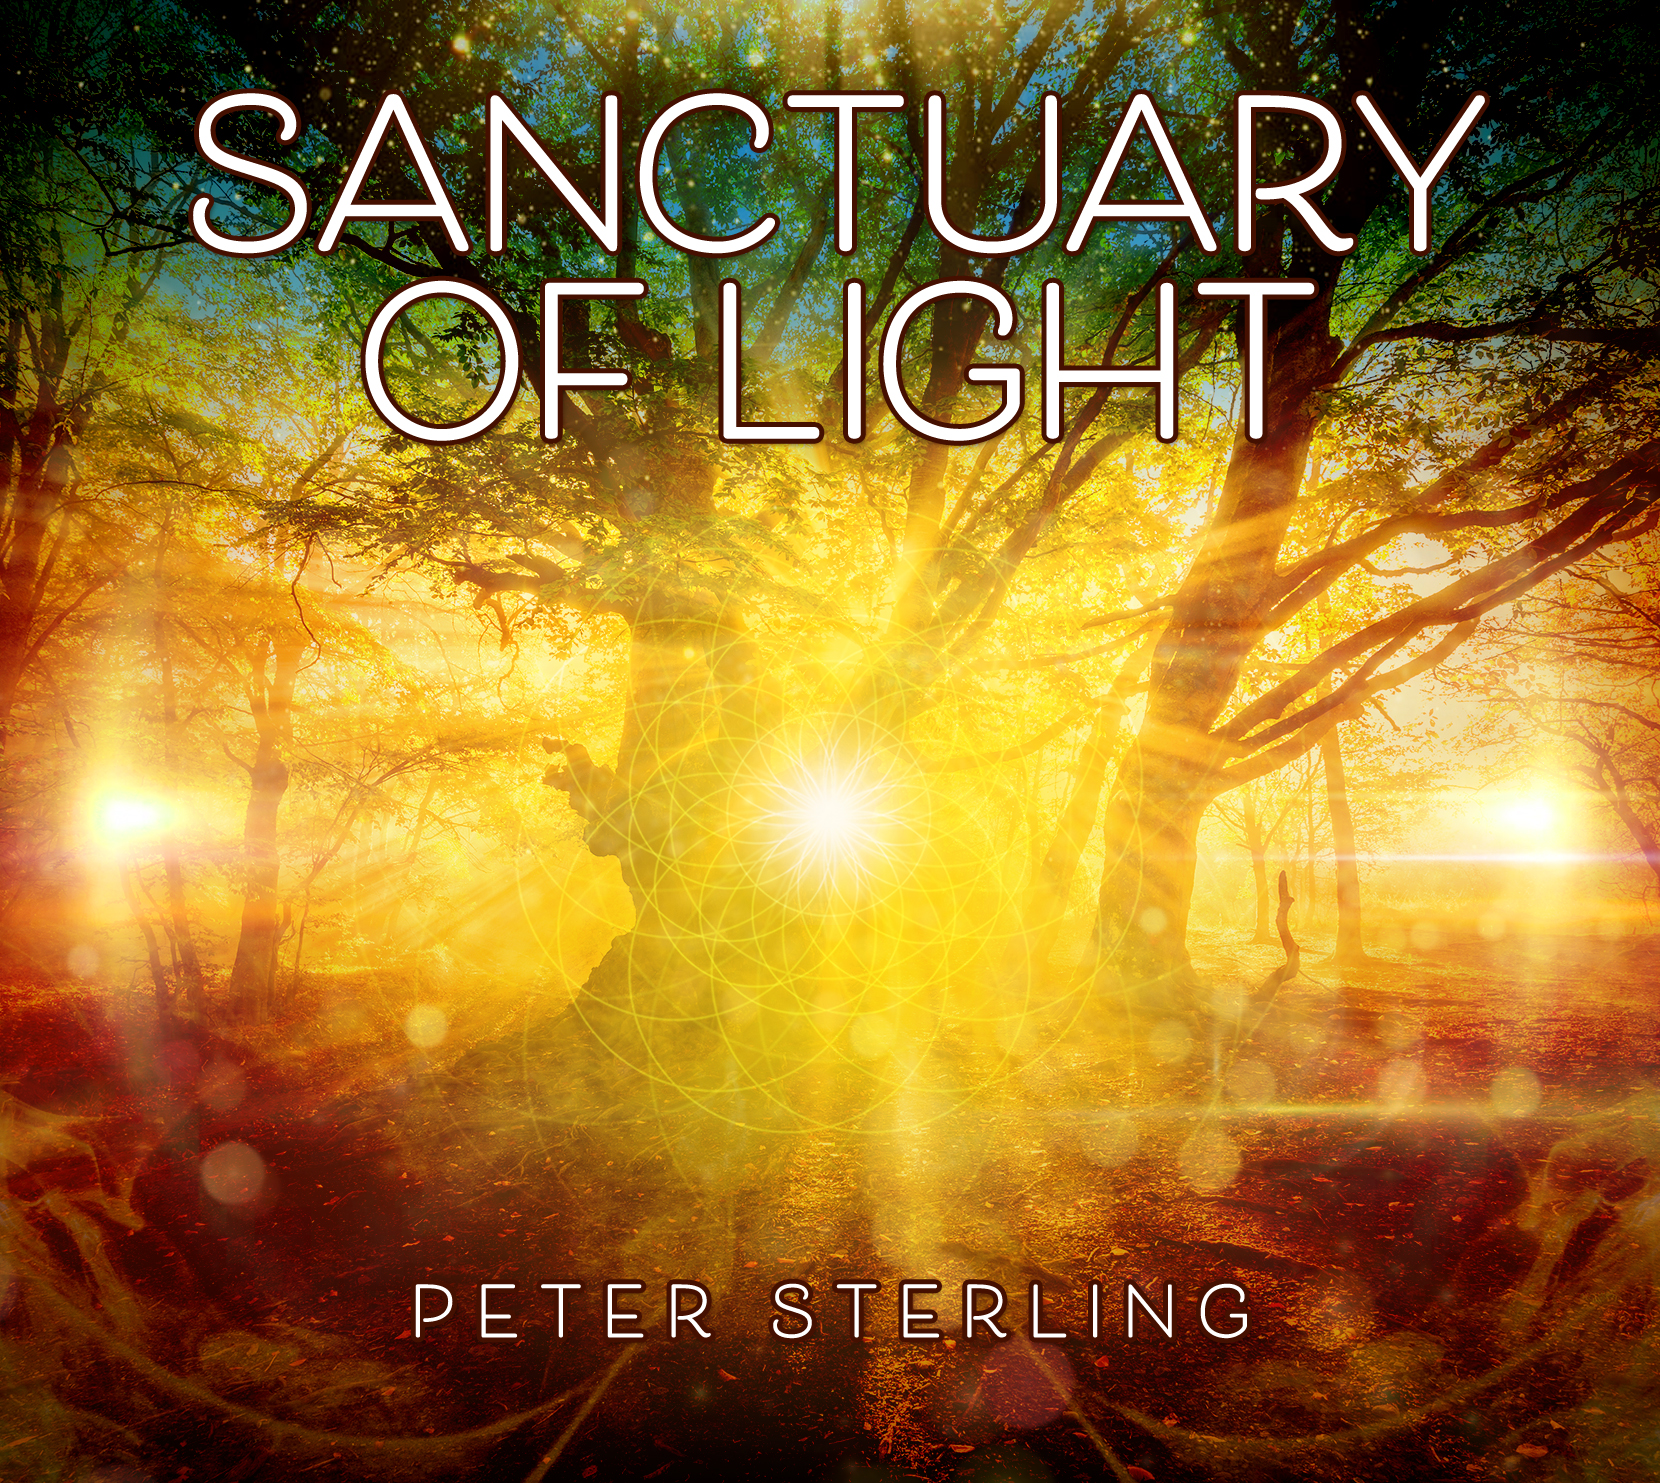 Peter Sterling - Sanctuary